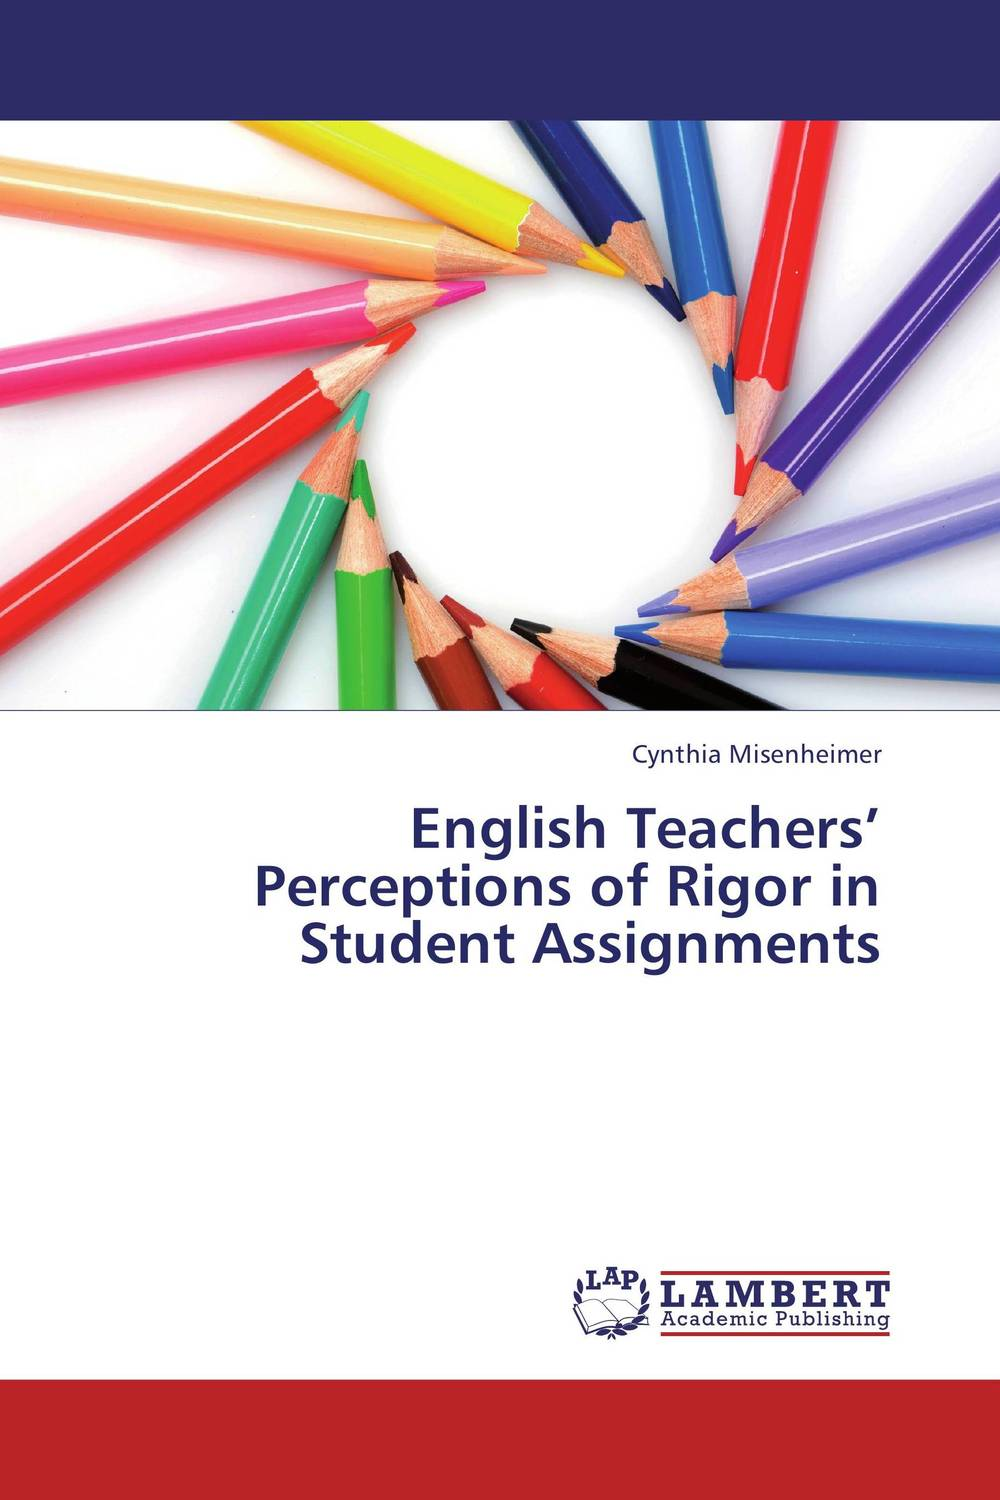 English Teachers' Perceptions of Rigor in Student Assignments